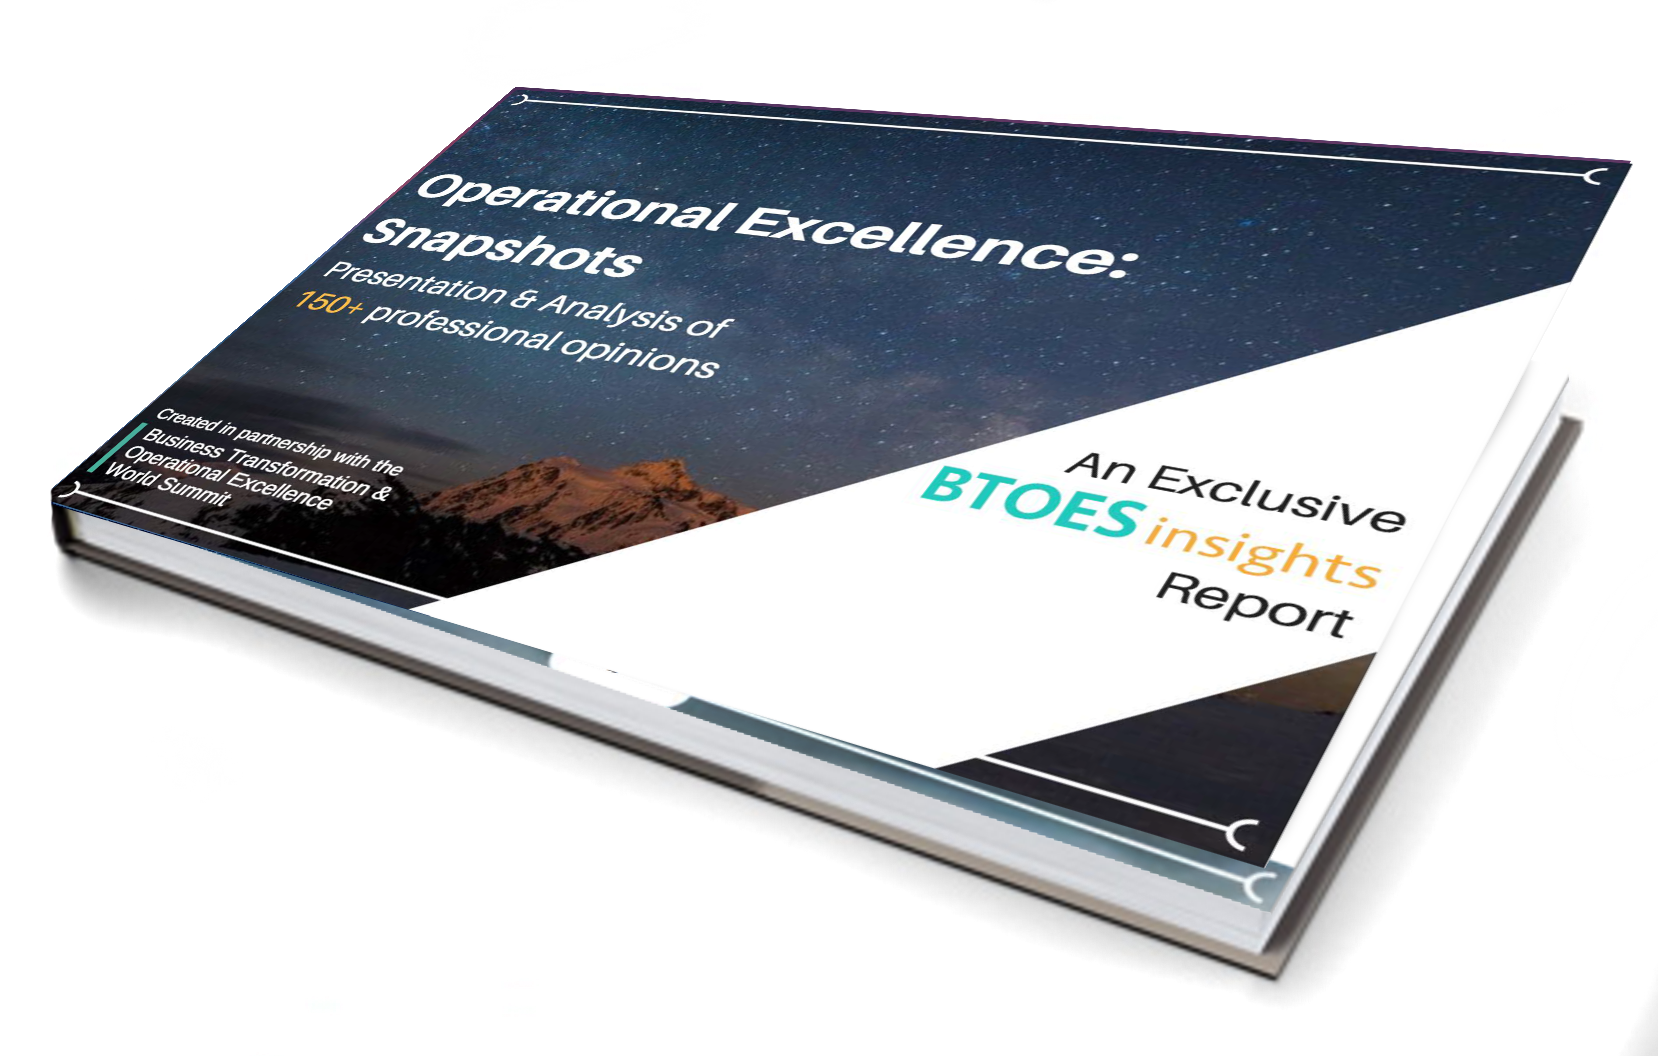 Operational Excellence: What is it? Strategy, definitions and more